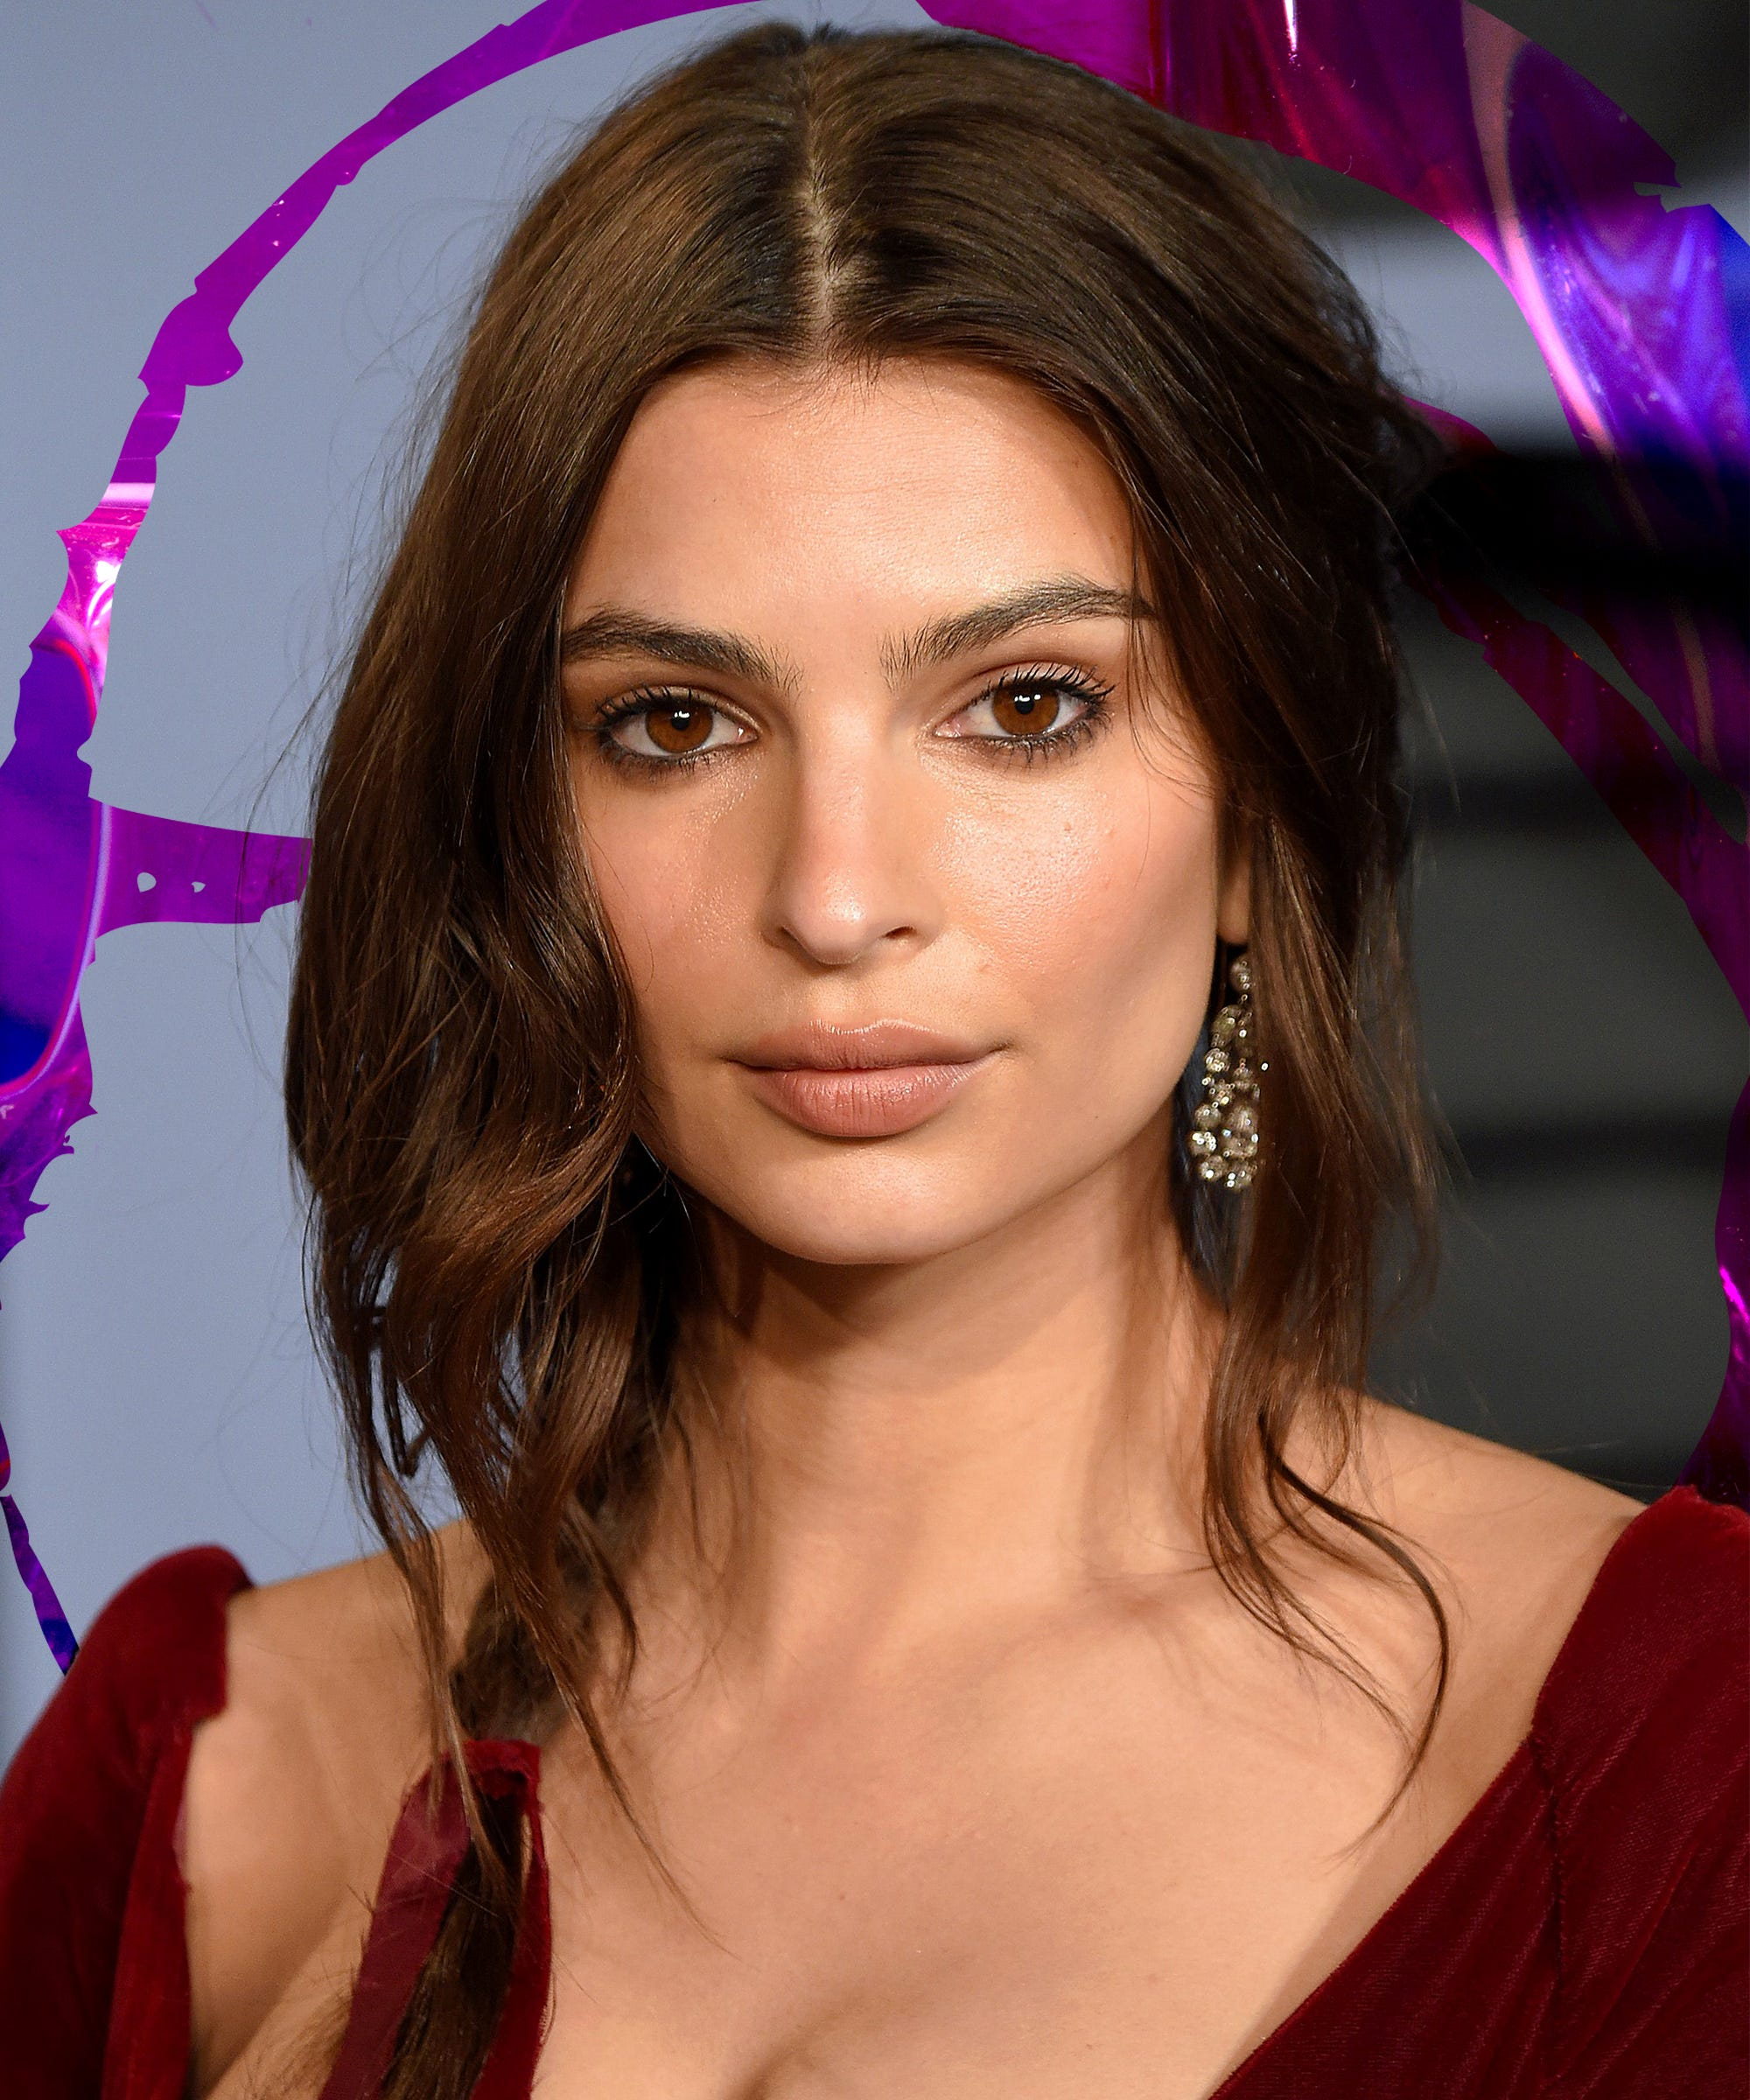 089f7a251192 https   www.refinery29.uk 2018 03 195383 emily-ratajkowski-bright ...